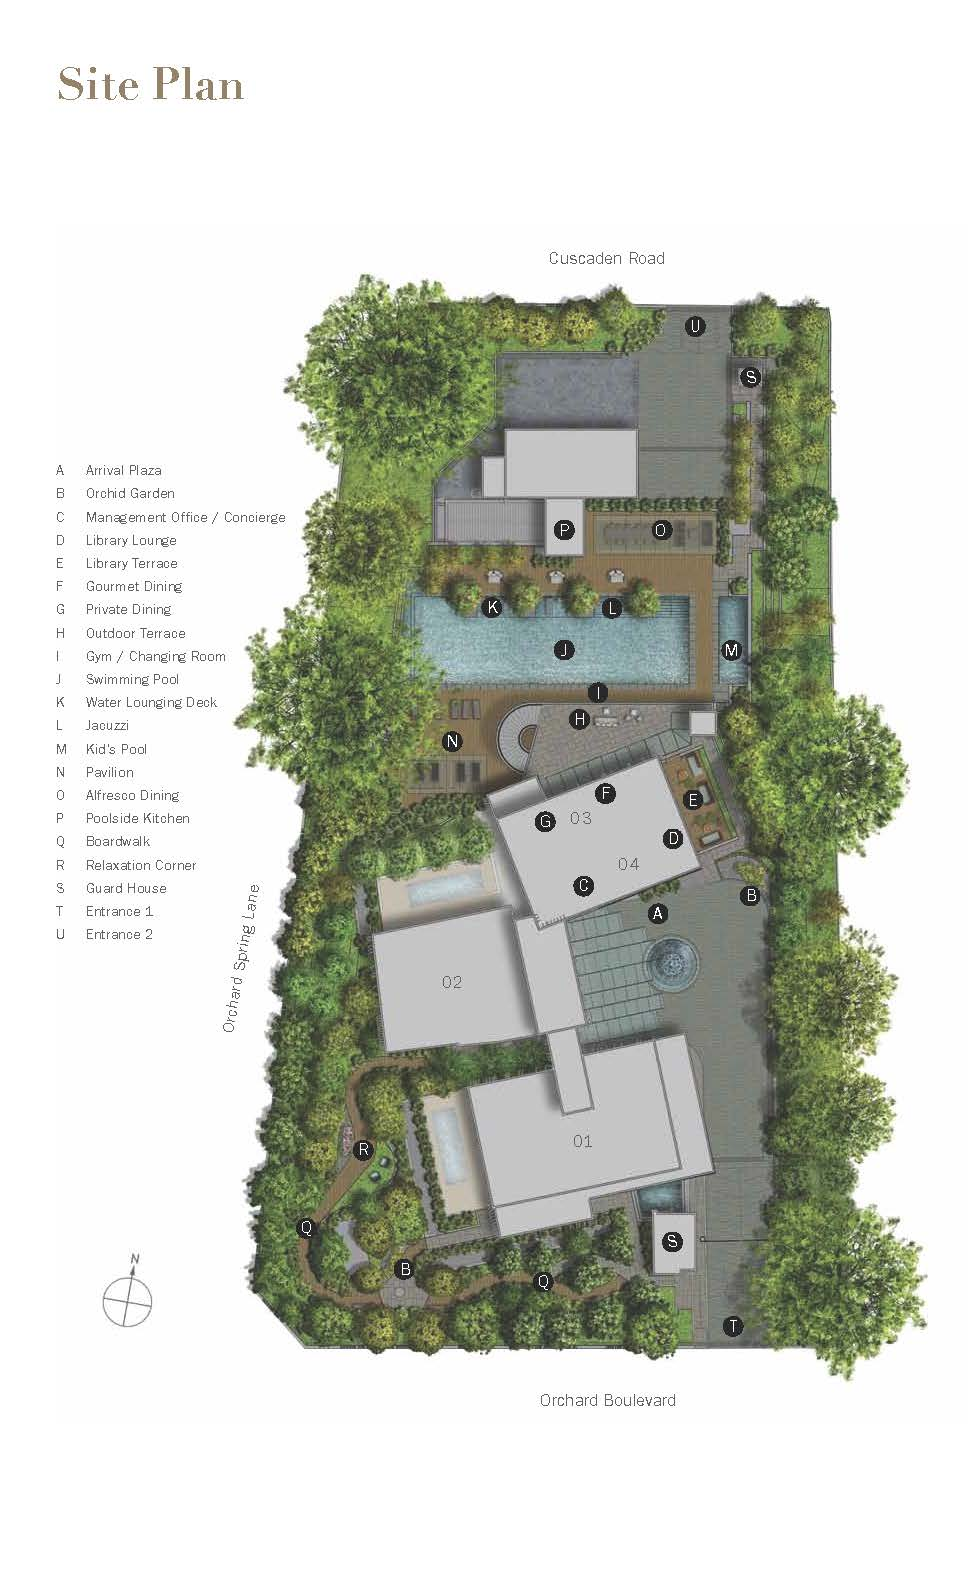 3 Orchard By-The-Park site plan